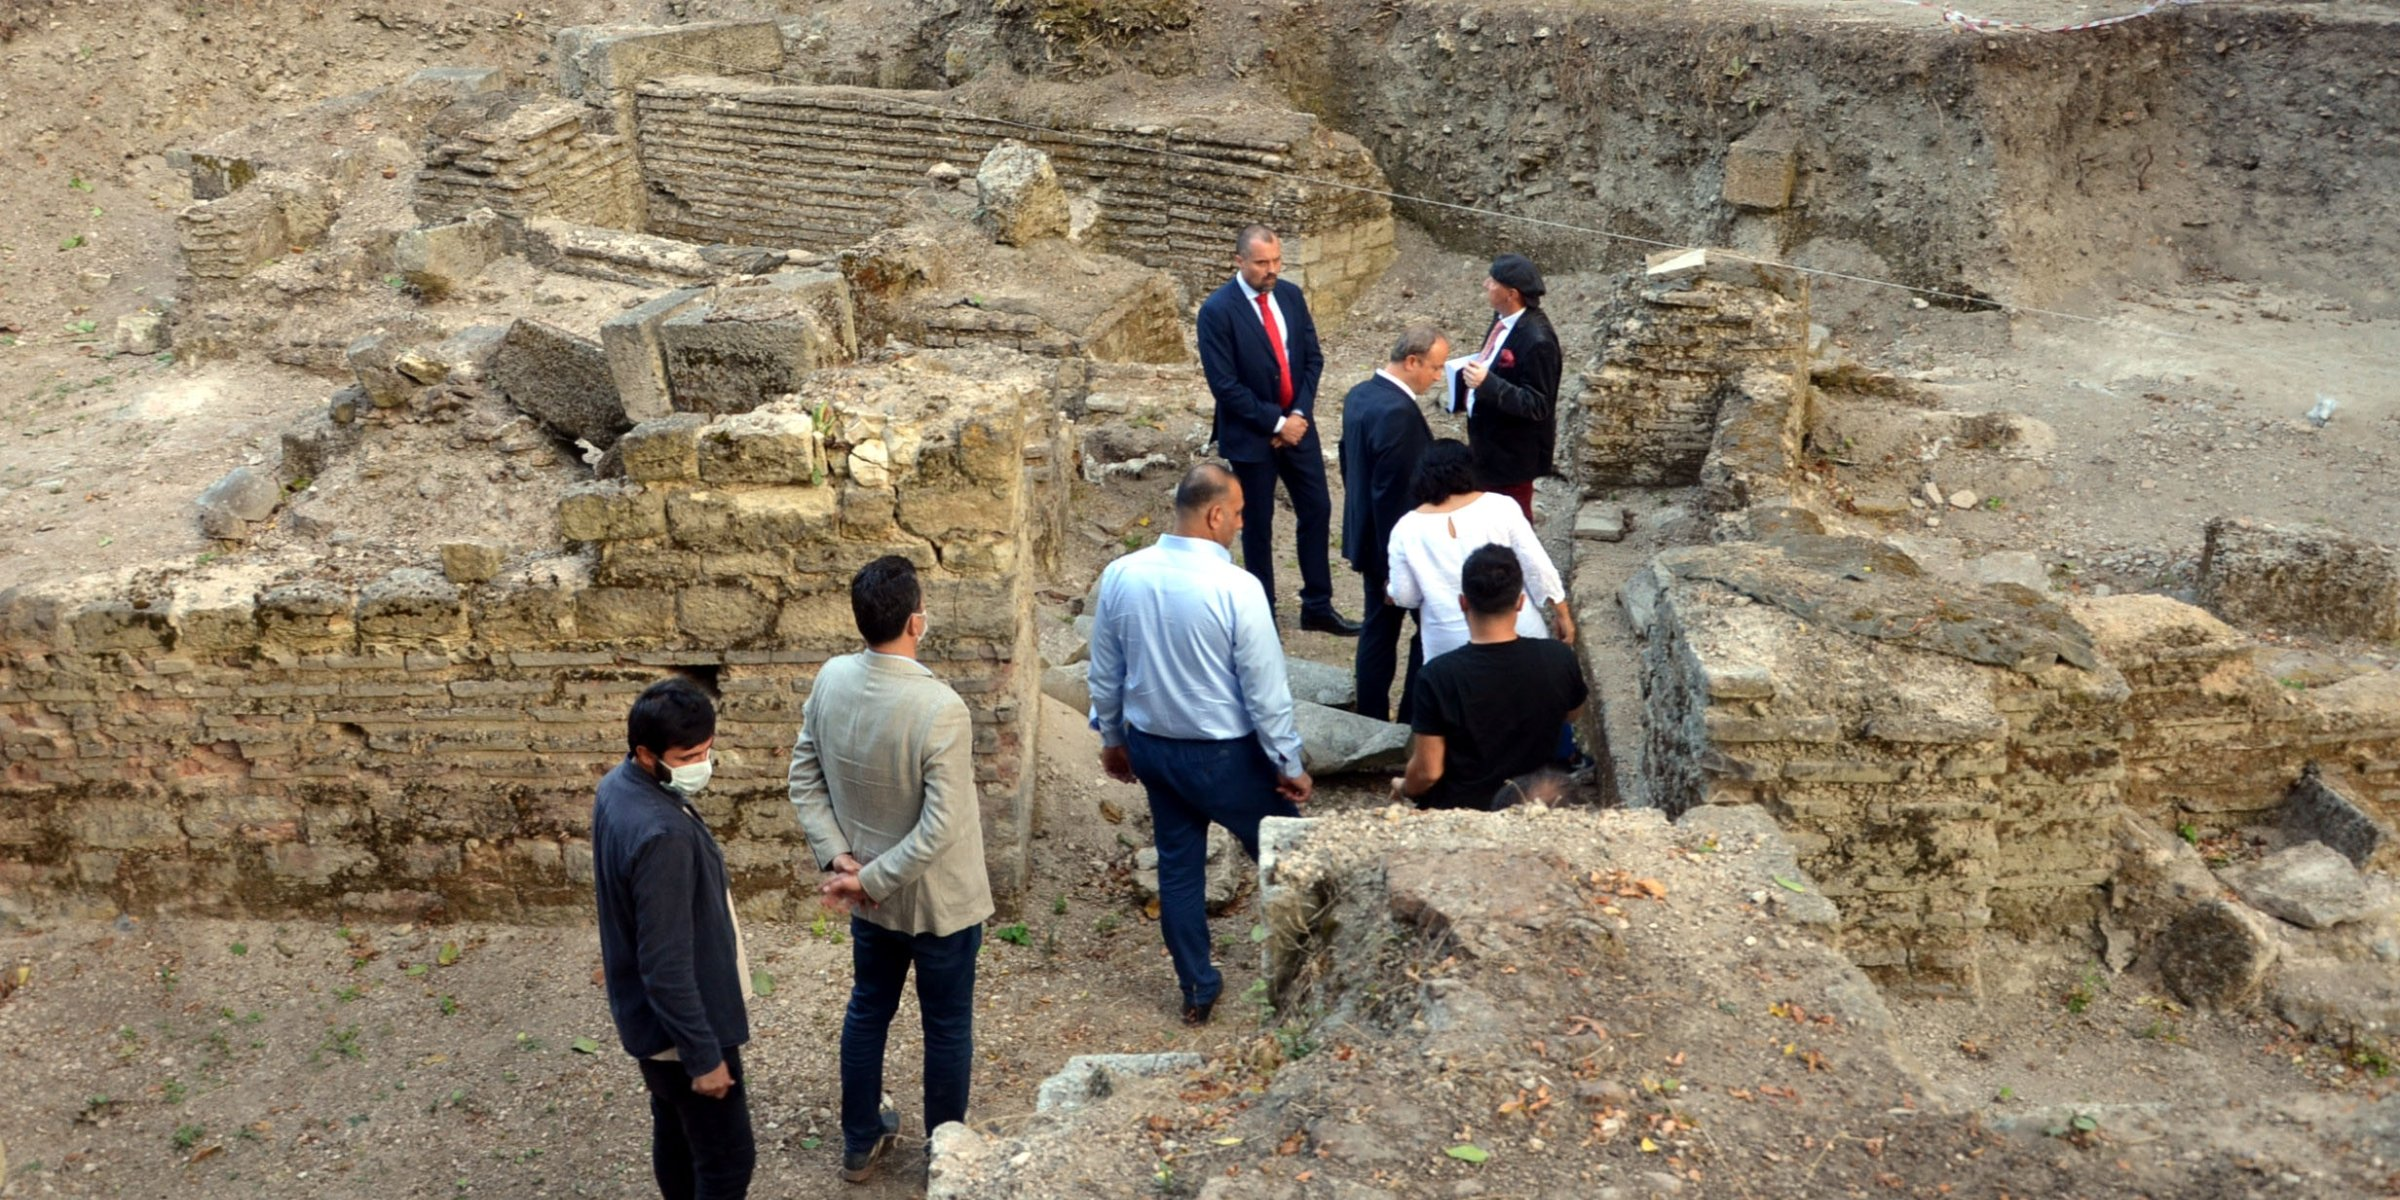 Polish envoy visits archaeological site revealing Vikings' presence in Istanbul